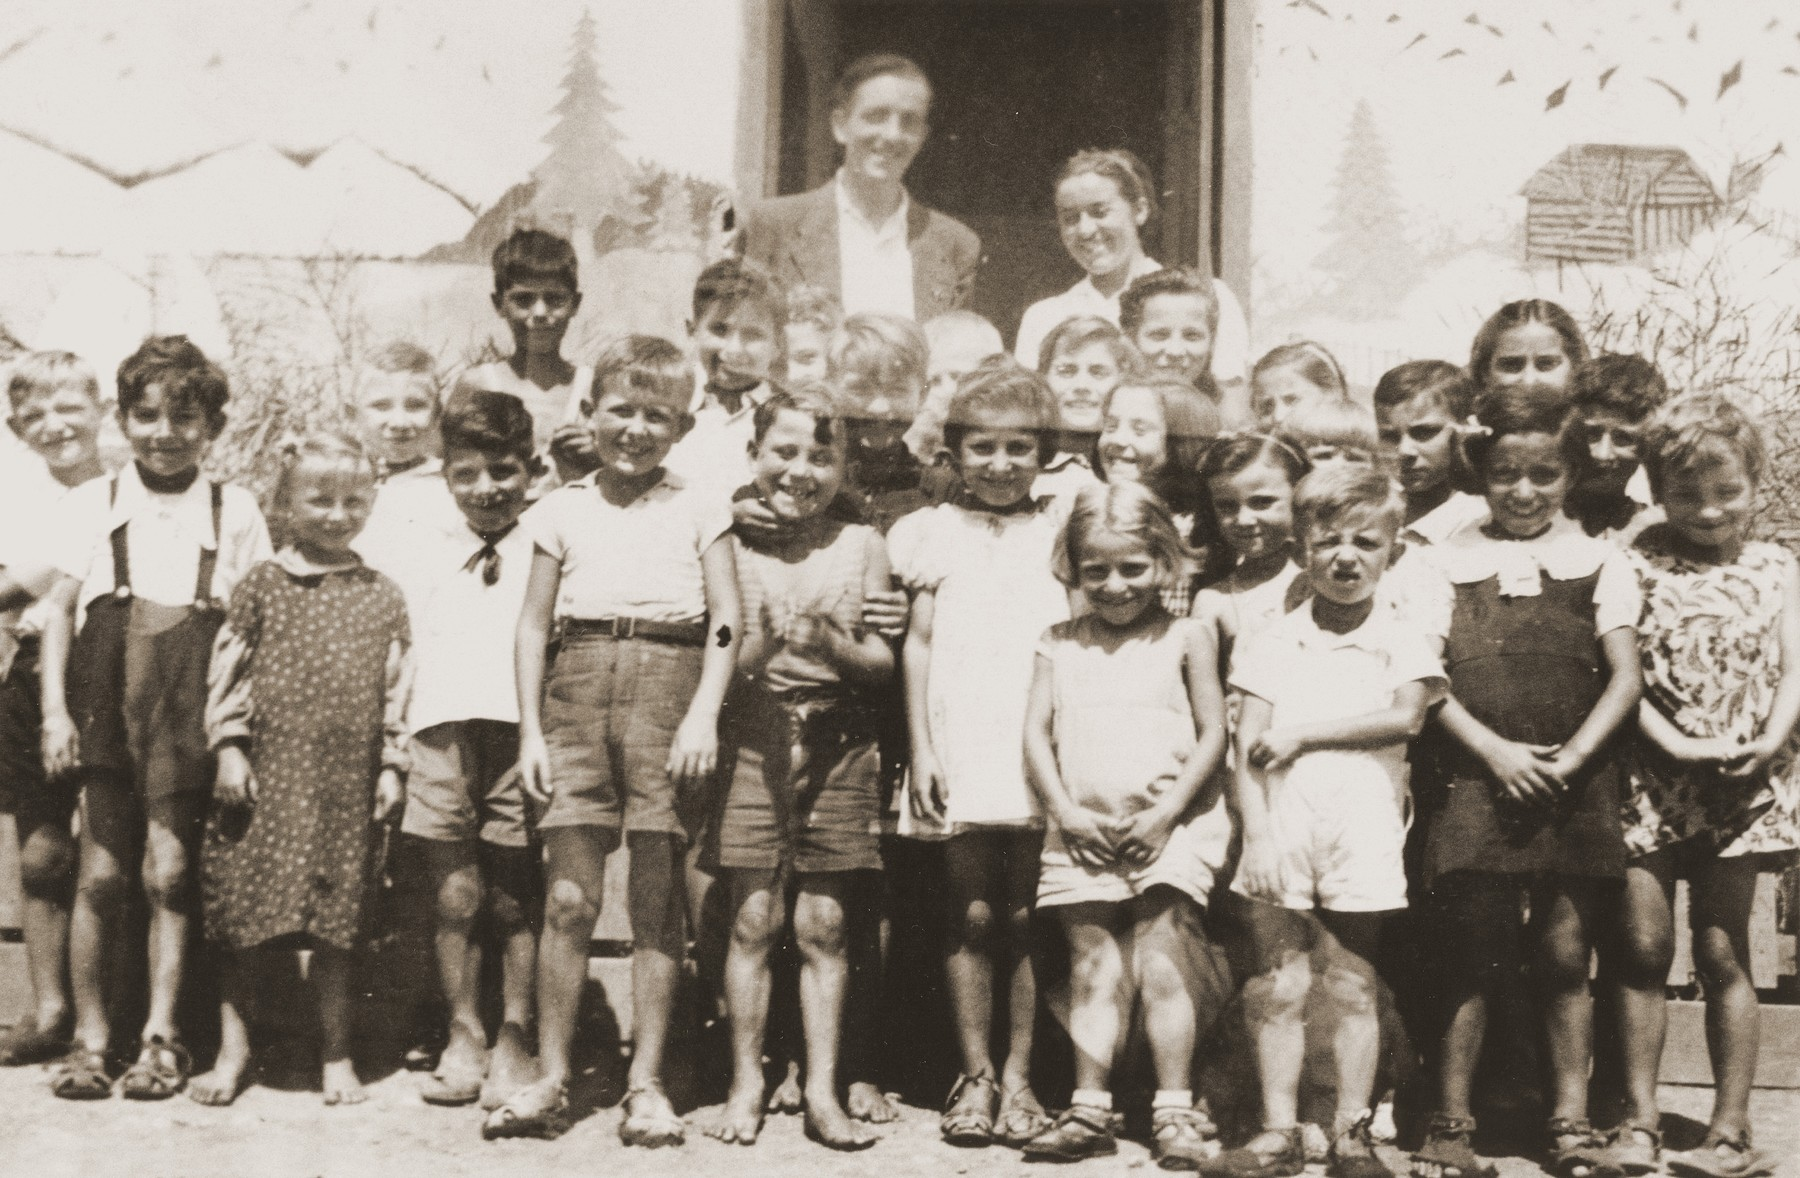 Friedel Reiter and August Bohny pose with a group of children in front of the Secours Suisse barracks in the Rivesaltes internment camp.    The building is decorated with a mural of the Swiss Alps.